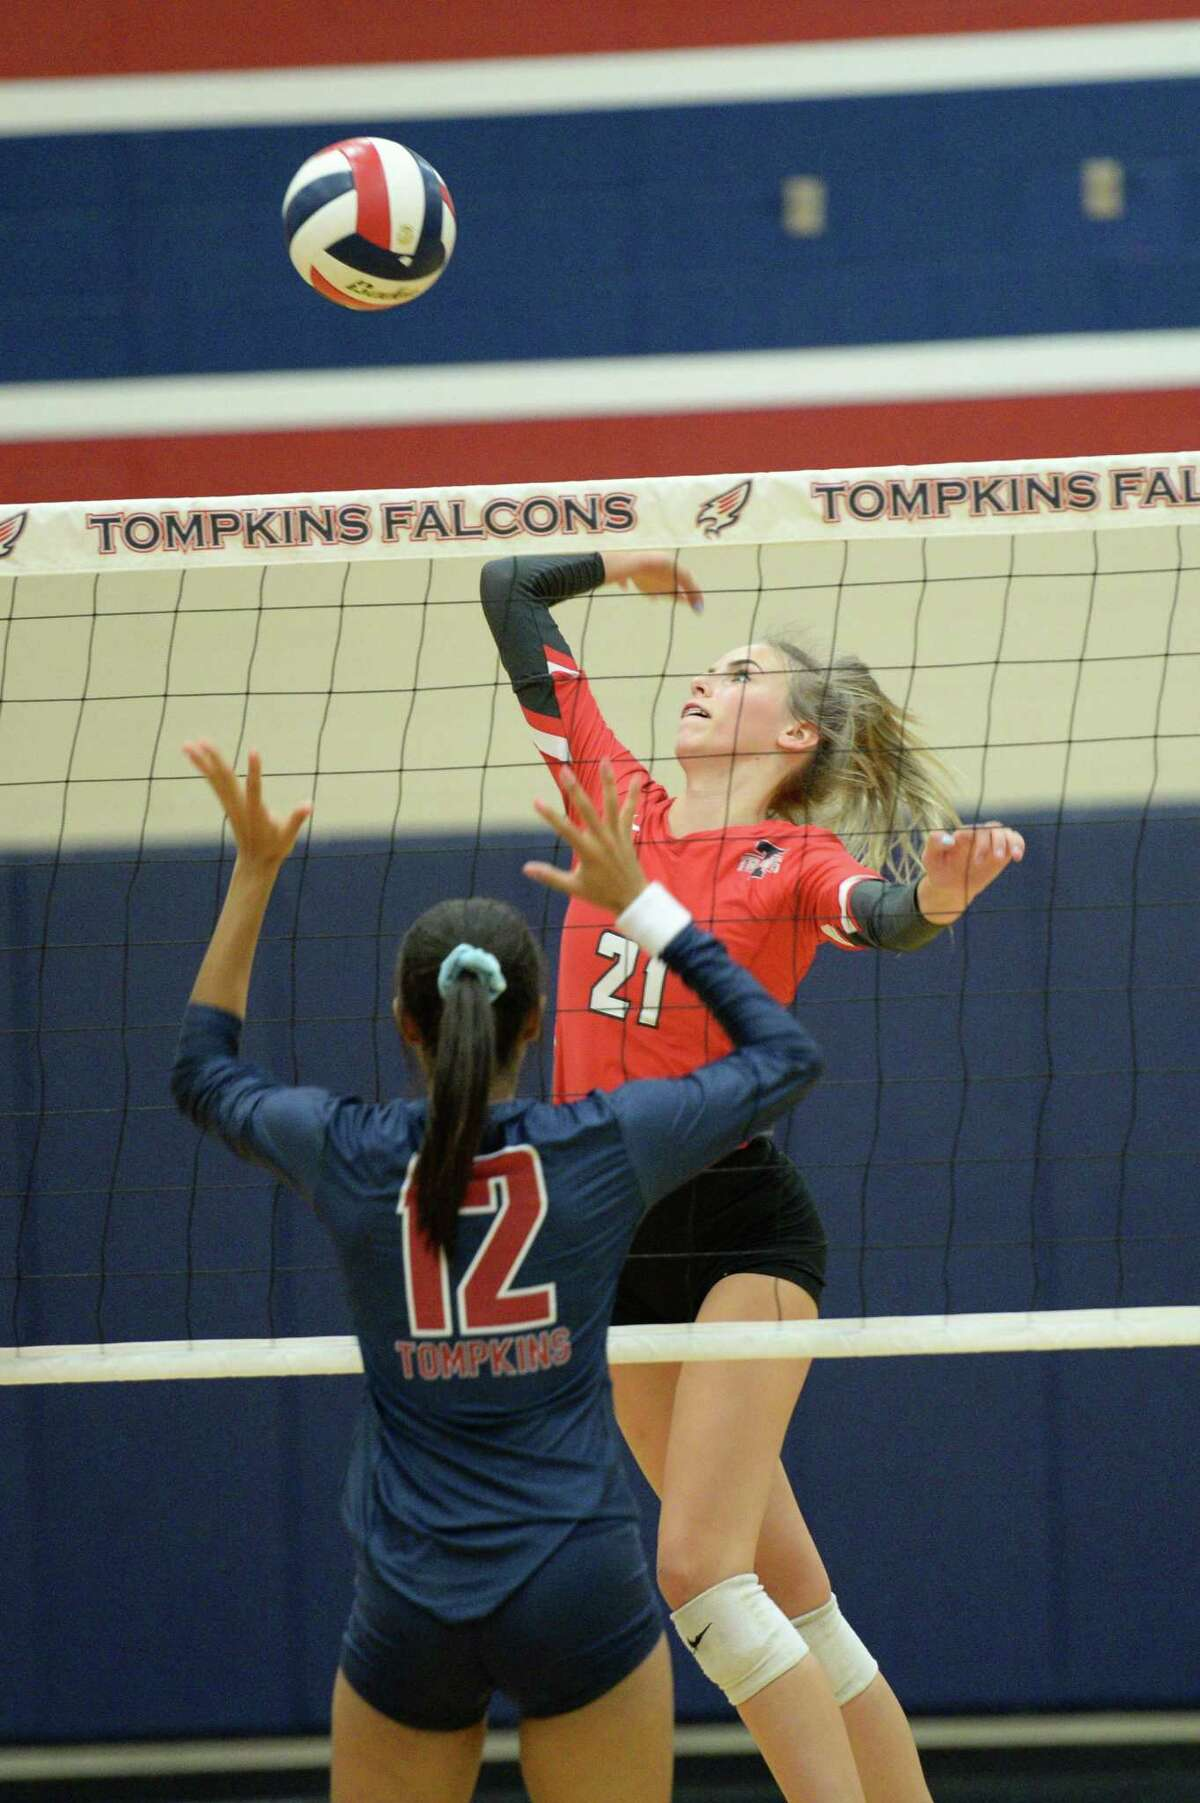 Taylor Glendening (21) of Travis attempts a shot during the first set of a volleyball match between the Tompkins Falcons and the Travis Tigers on Tuesday, August 6, 2019 at the Travis HS, Katy, TX.